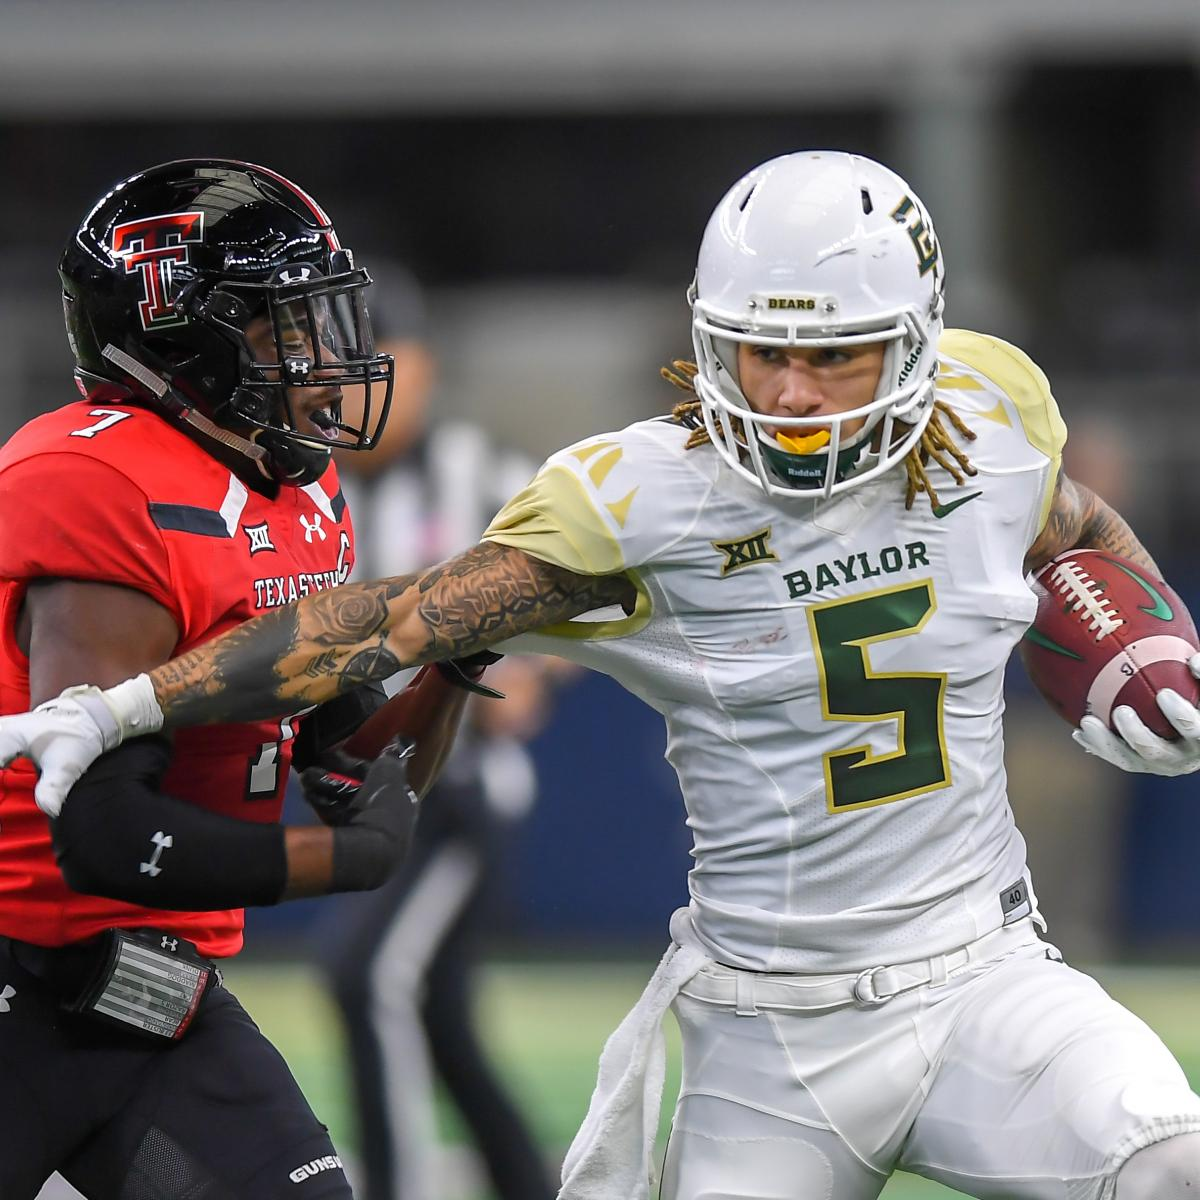 49ers Draft Baylor WR Jalen Hurd; Joins Deebo Samuel As SF